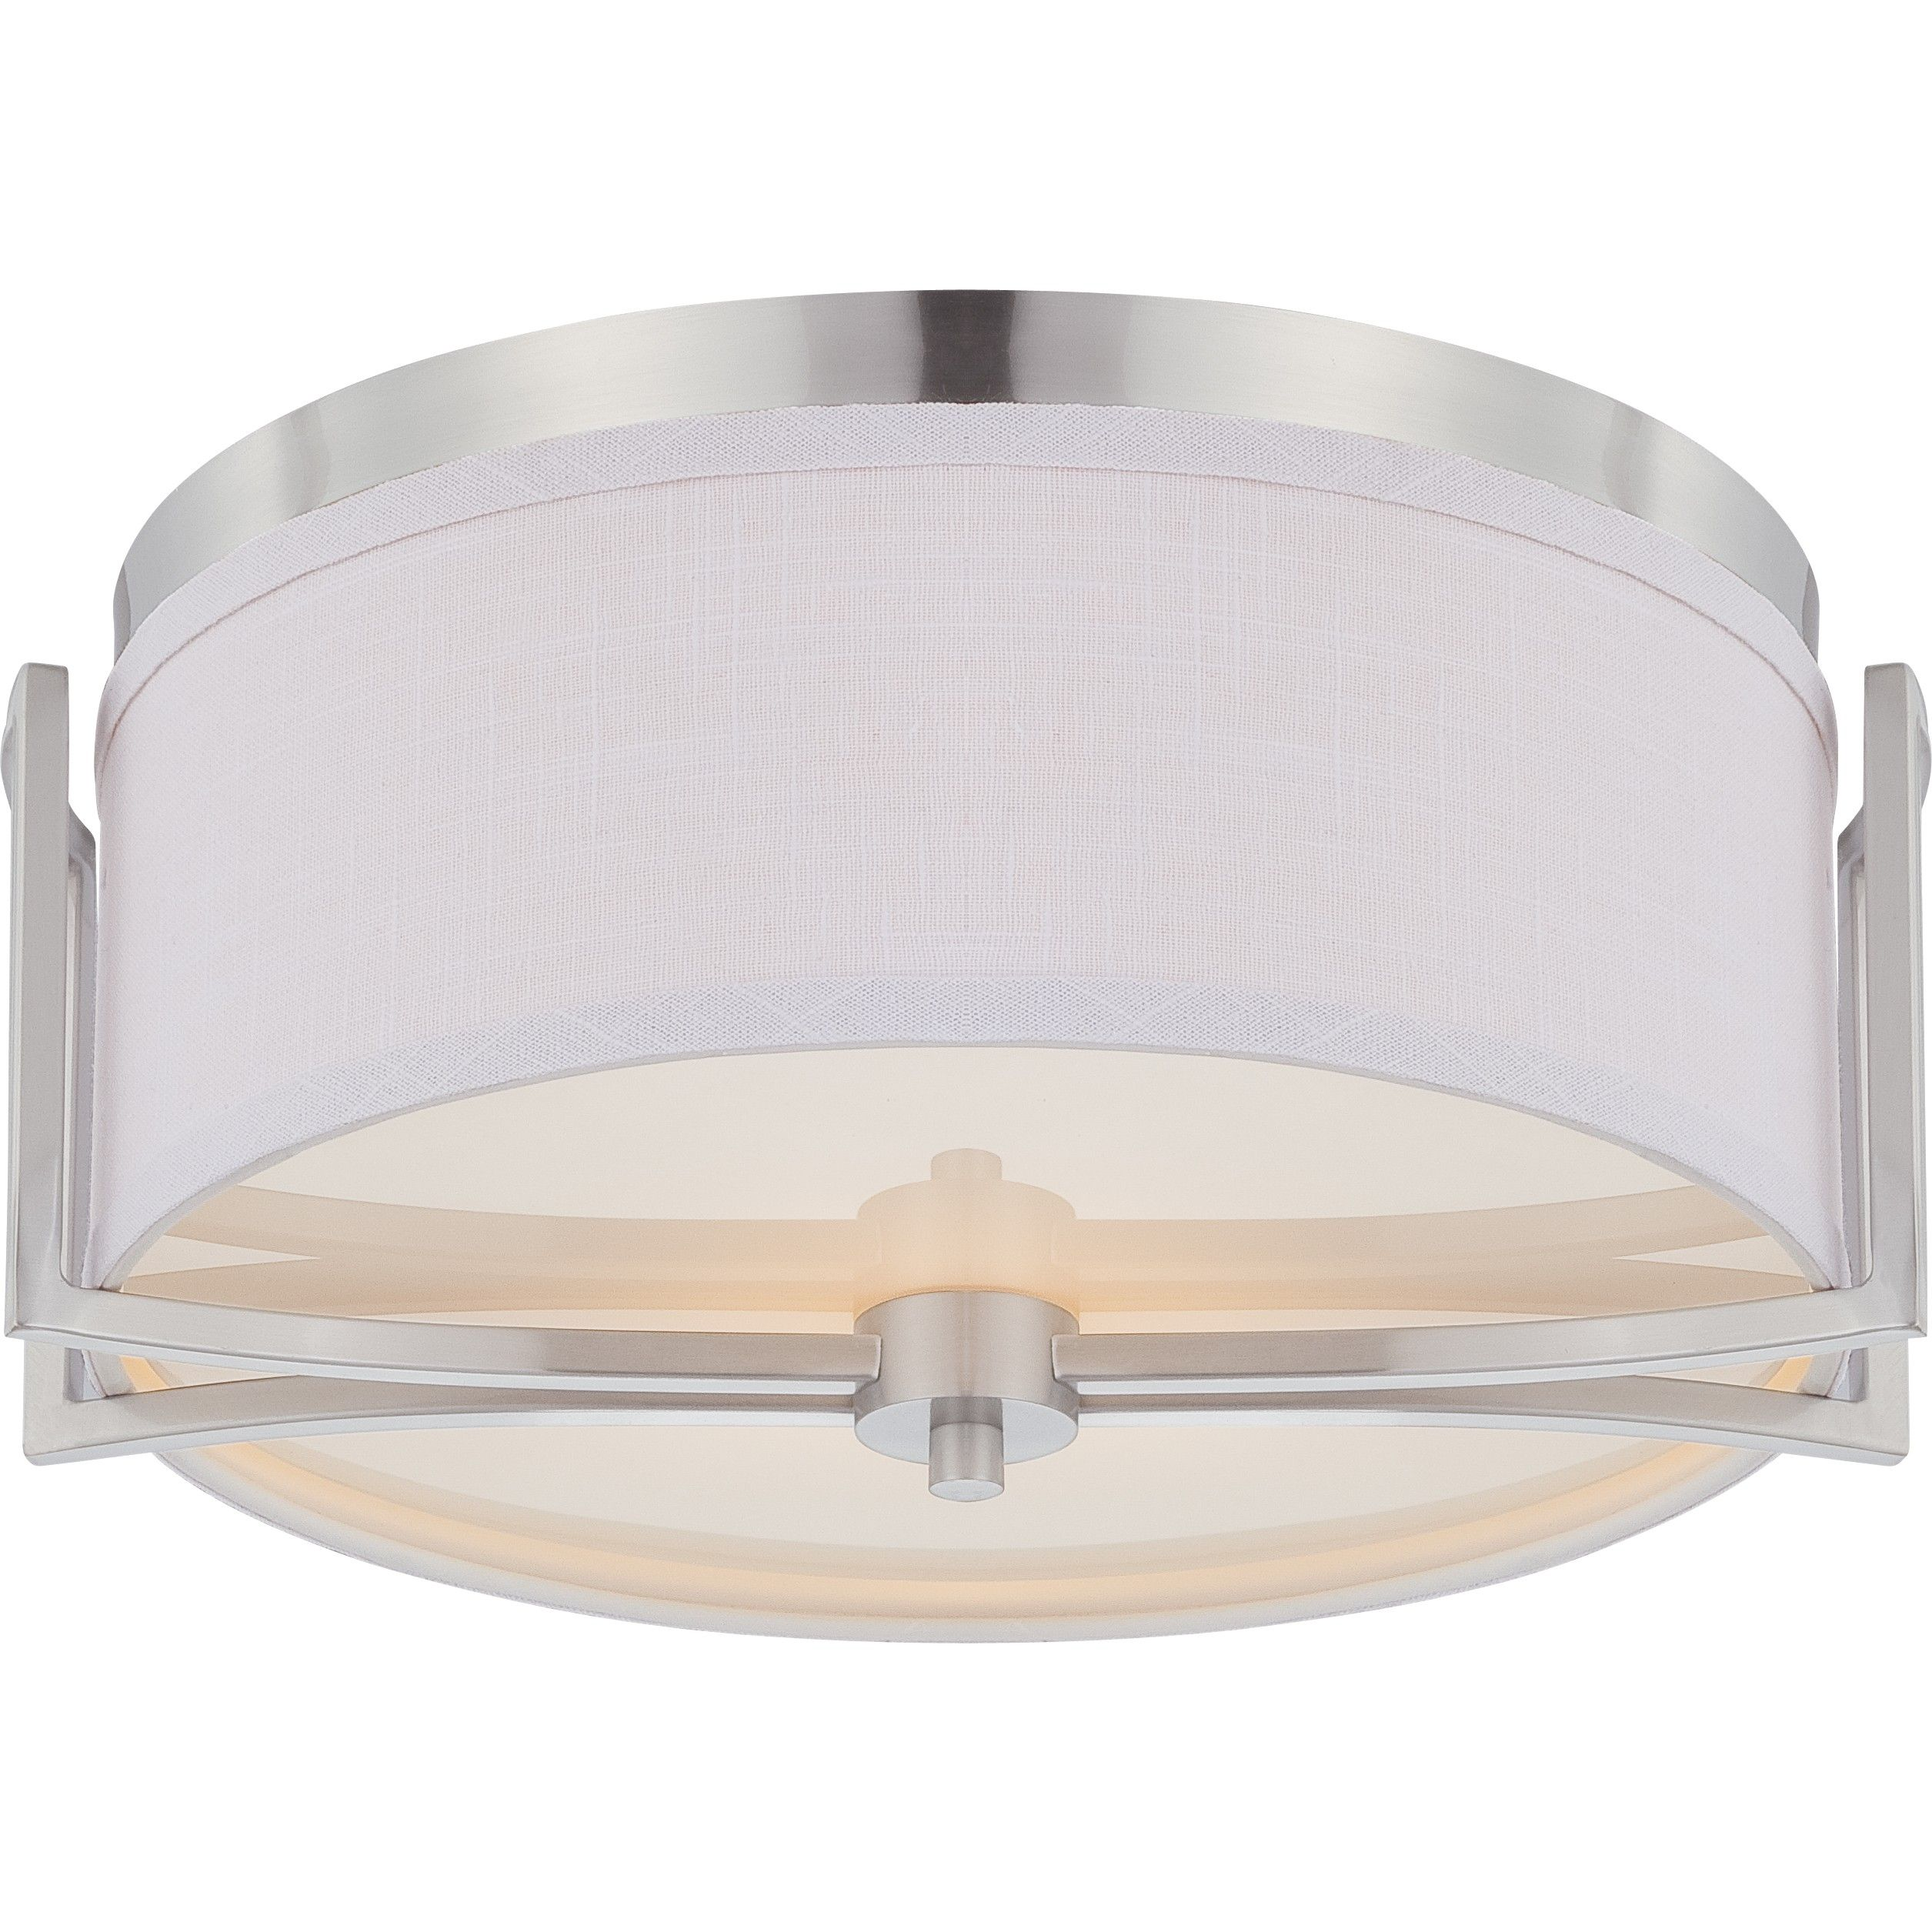 interior shopping fixture quotations get ceilings nickel finish westinghouse ceiling with mount brushed light find flush cheap three guides